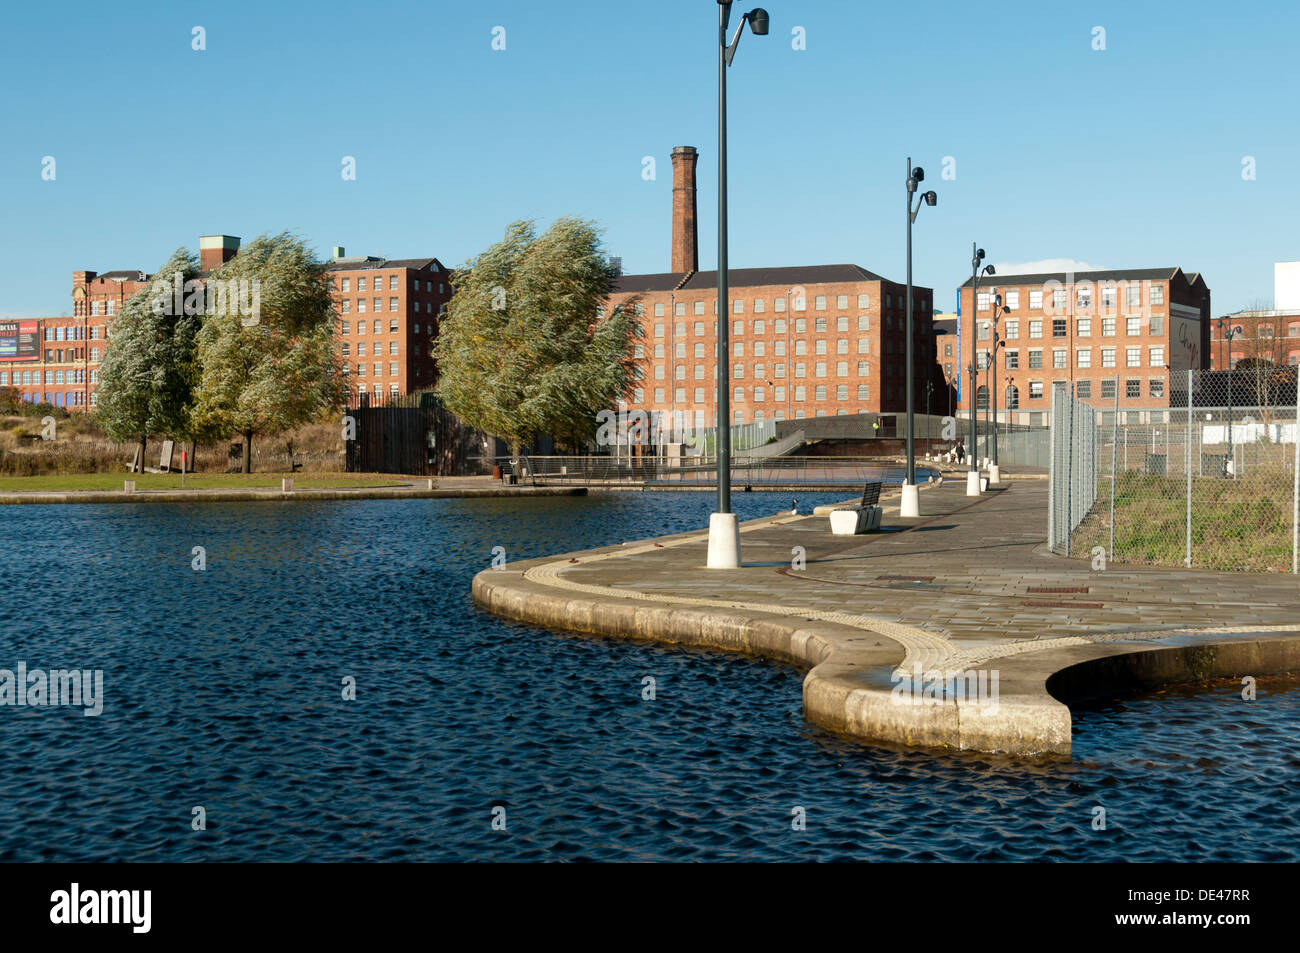 Royal Mills over Cotton Field Park, New Islington, Ancoats, Manchester, England, UK - Stock Image